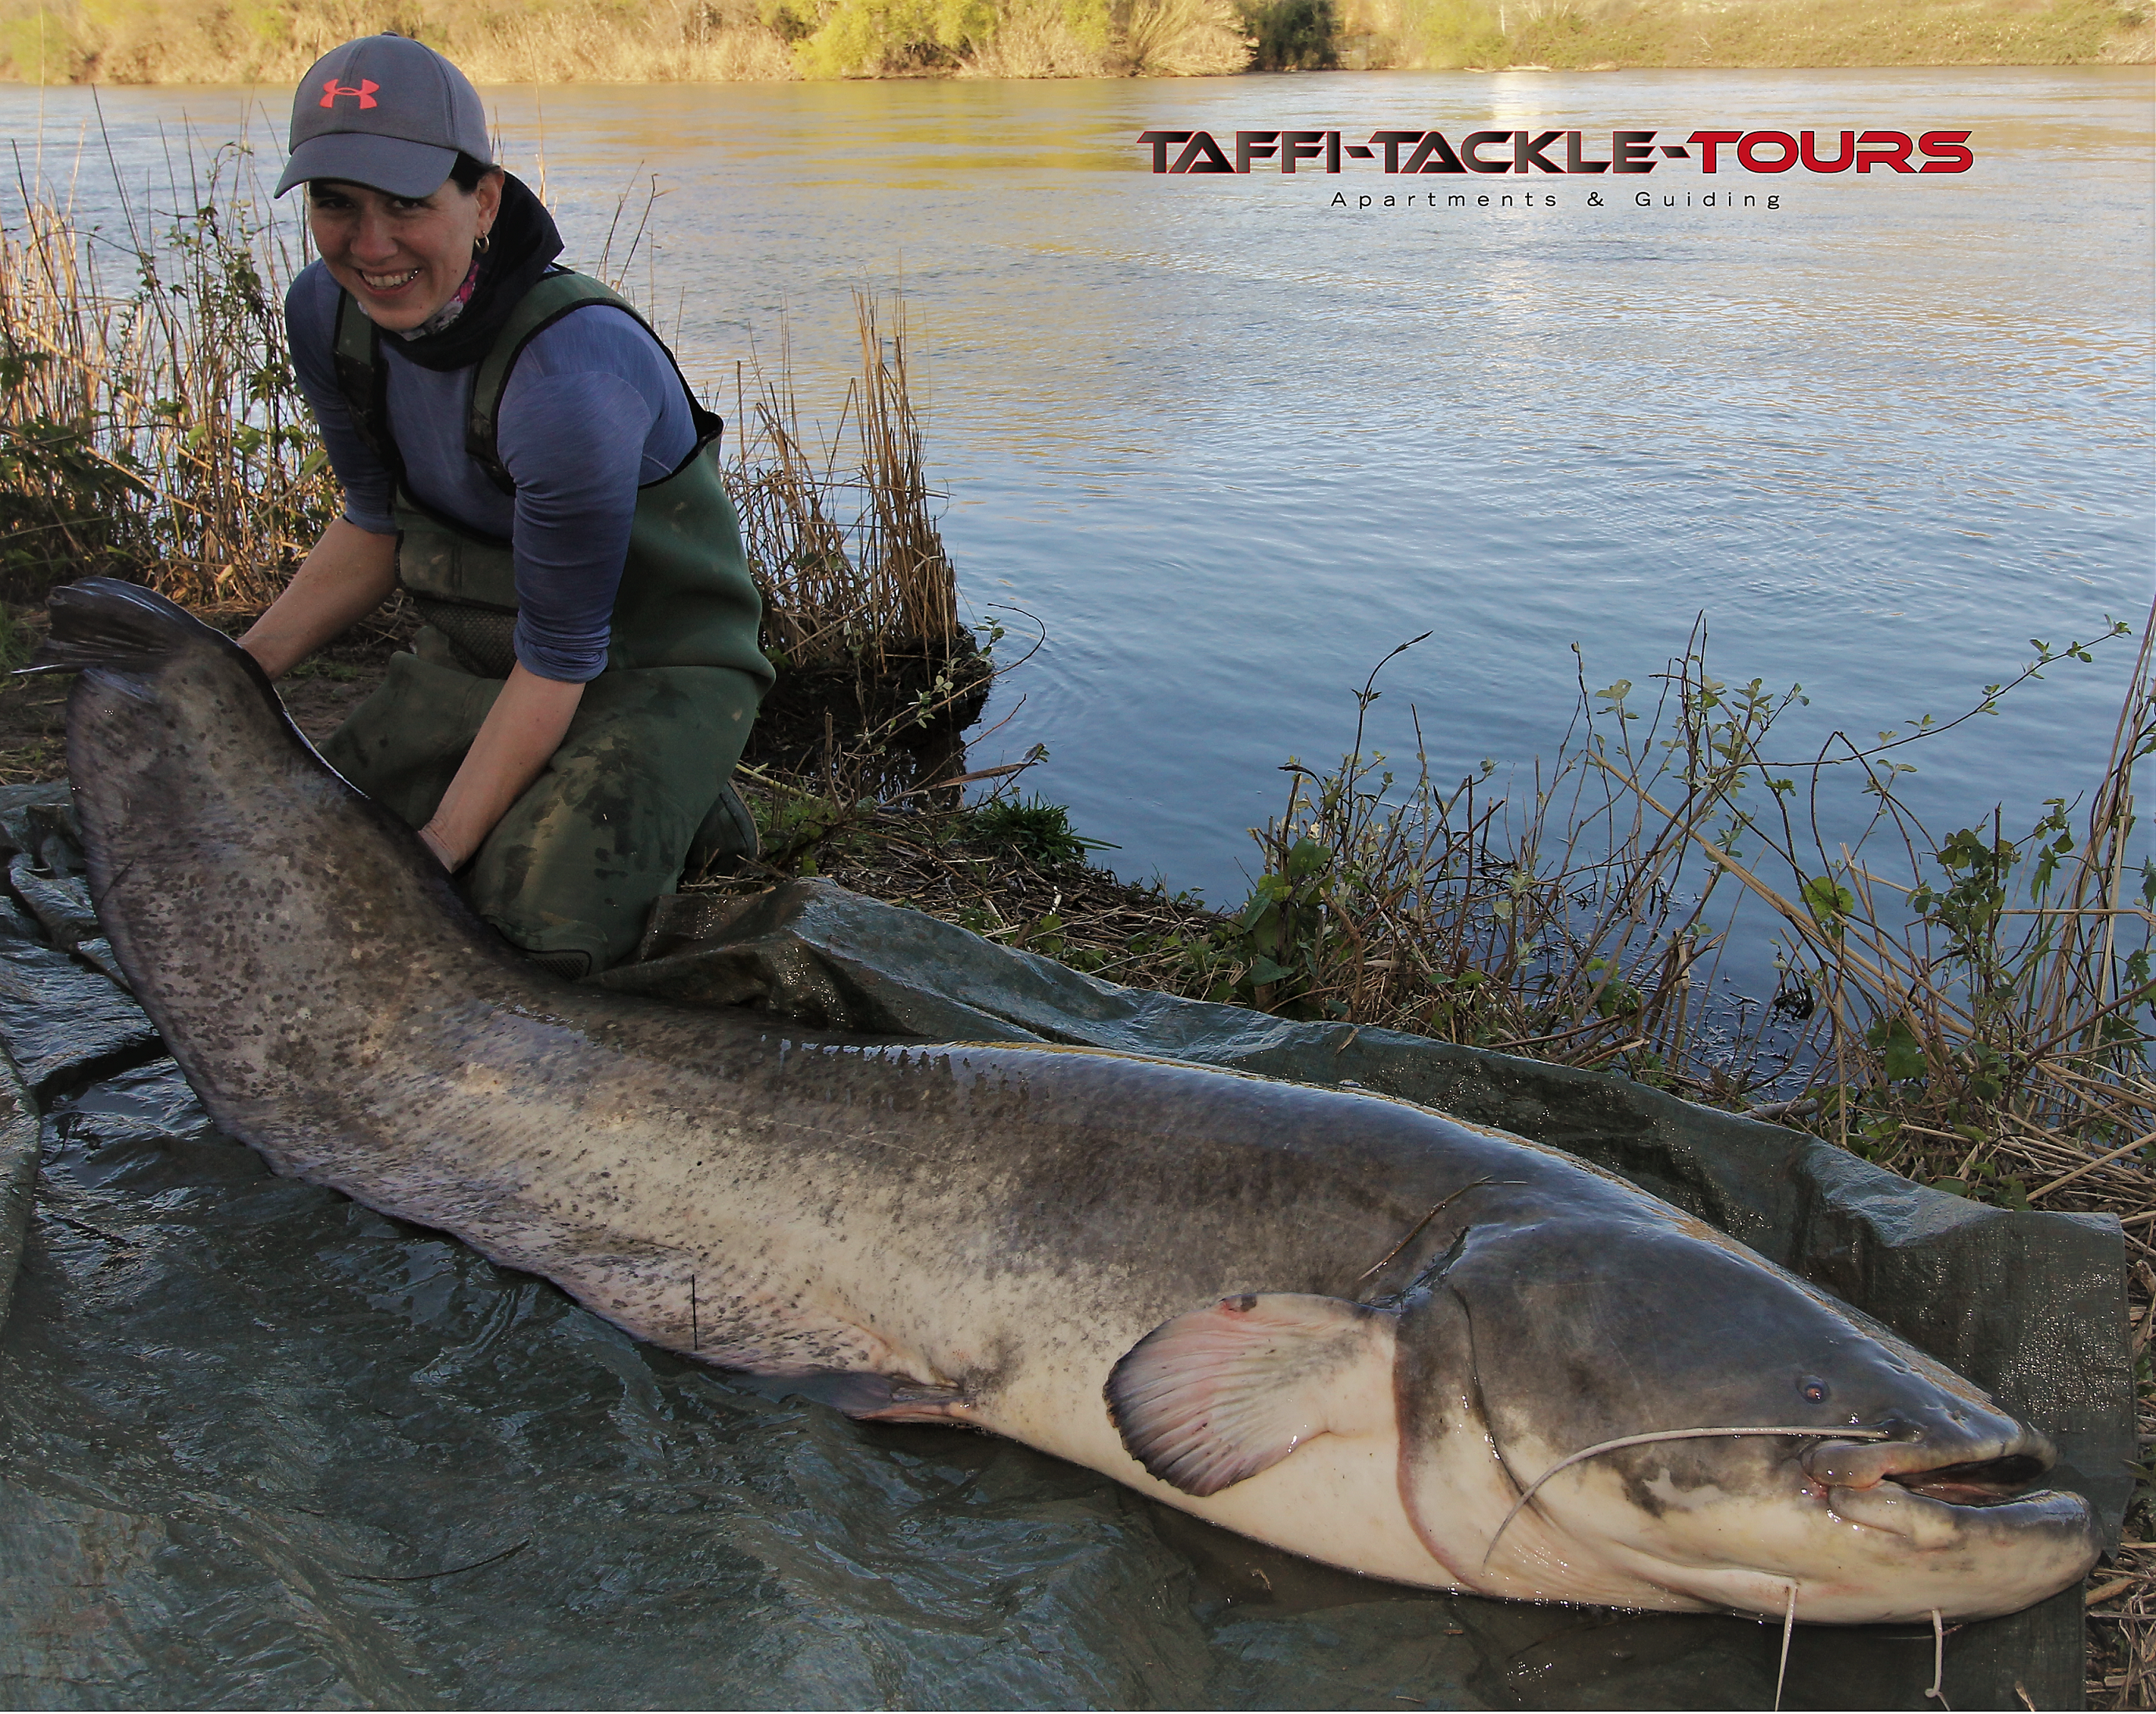 angeln in spanien im camp von taffi tackle tours